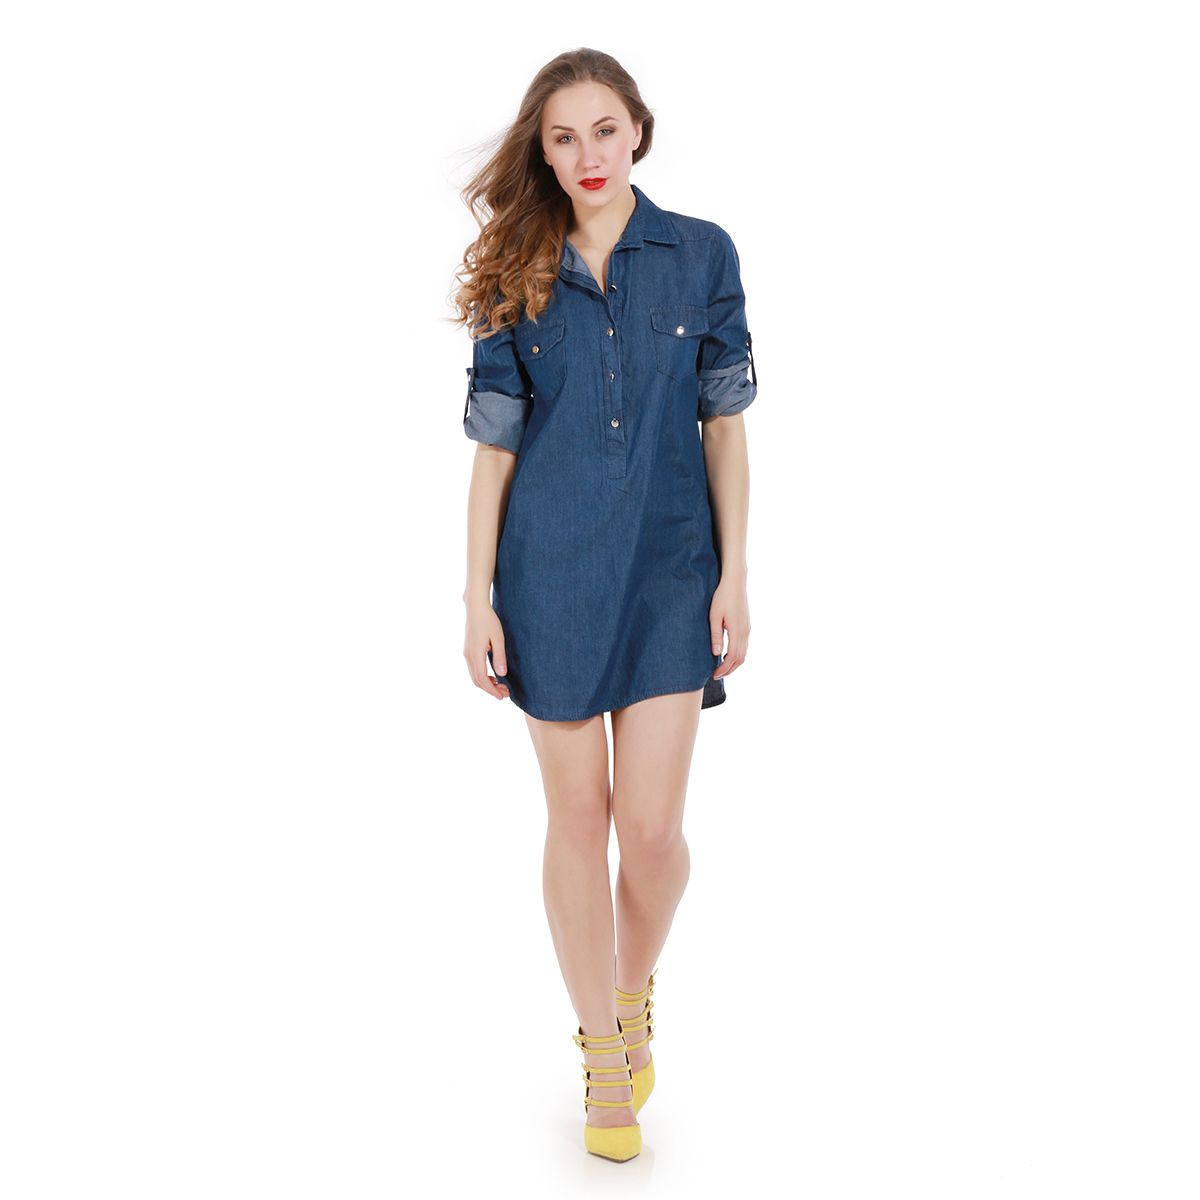 vetements femme robe chemise en jeans bleu fonc avec poches pas cher. Black Bedroom Furniture Sets. Home Design Ideas